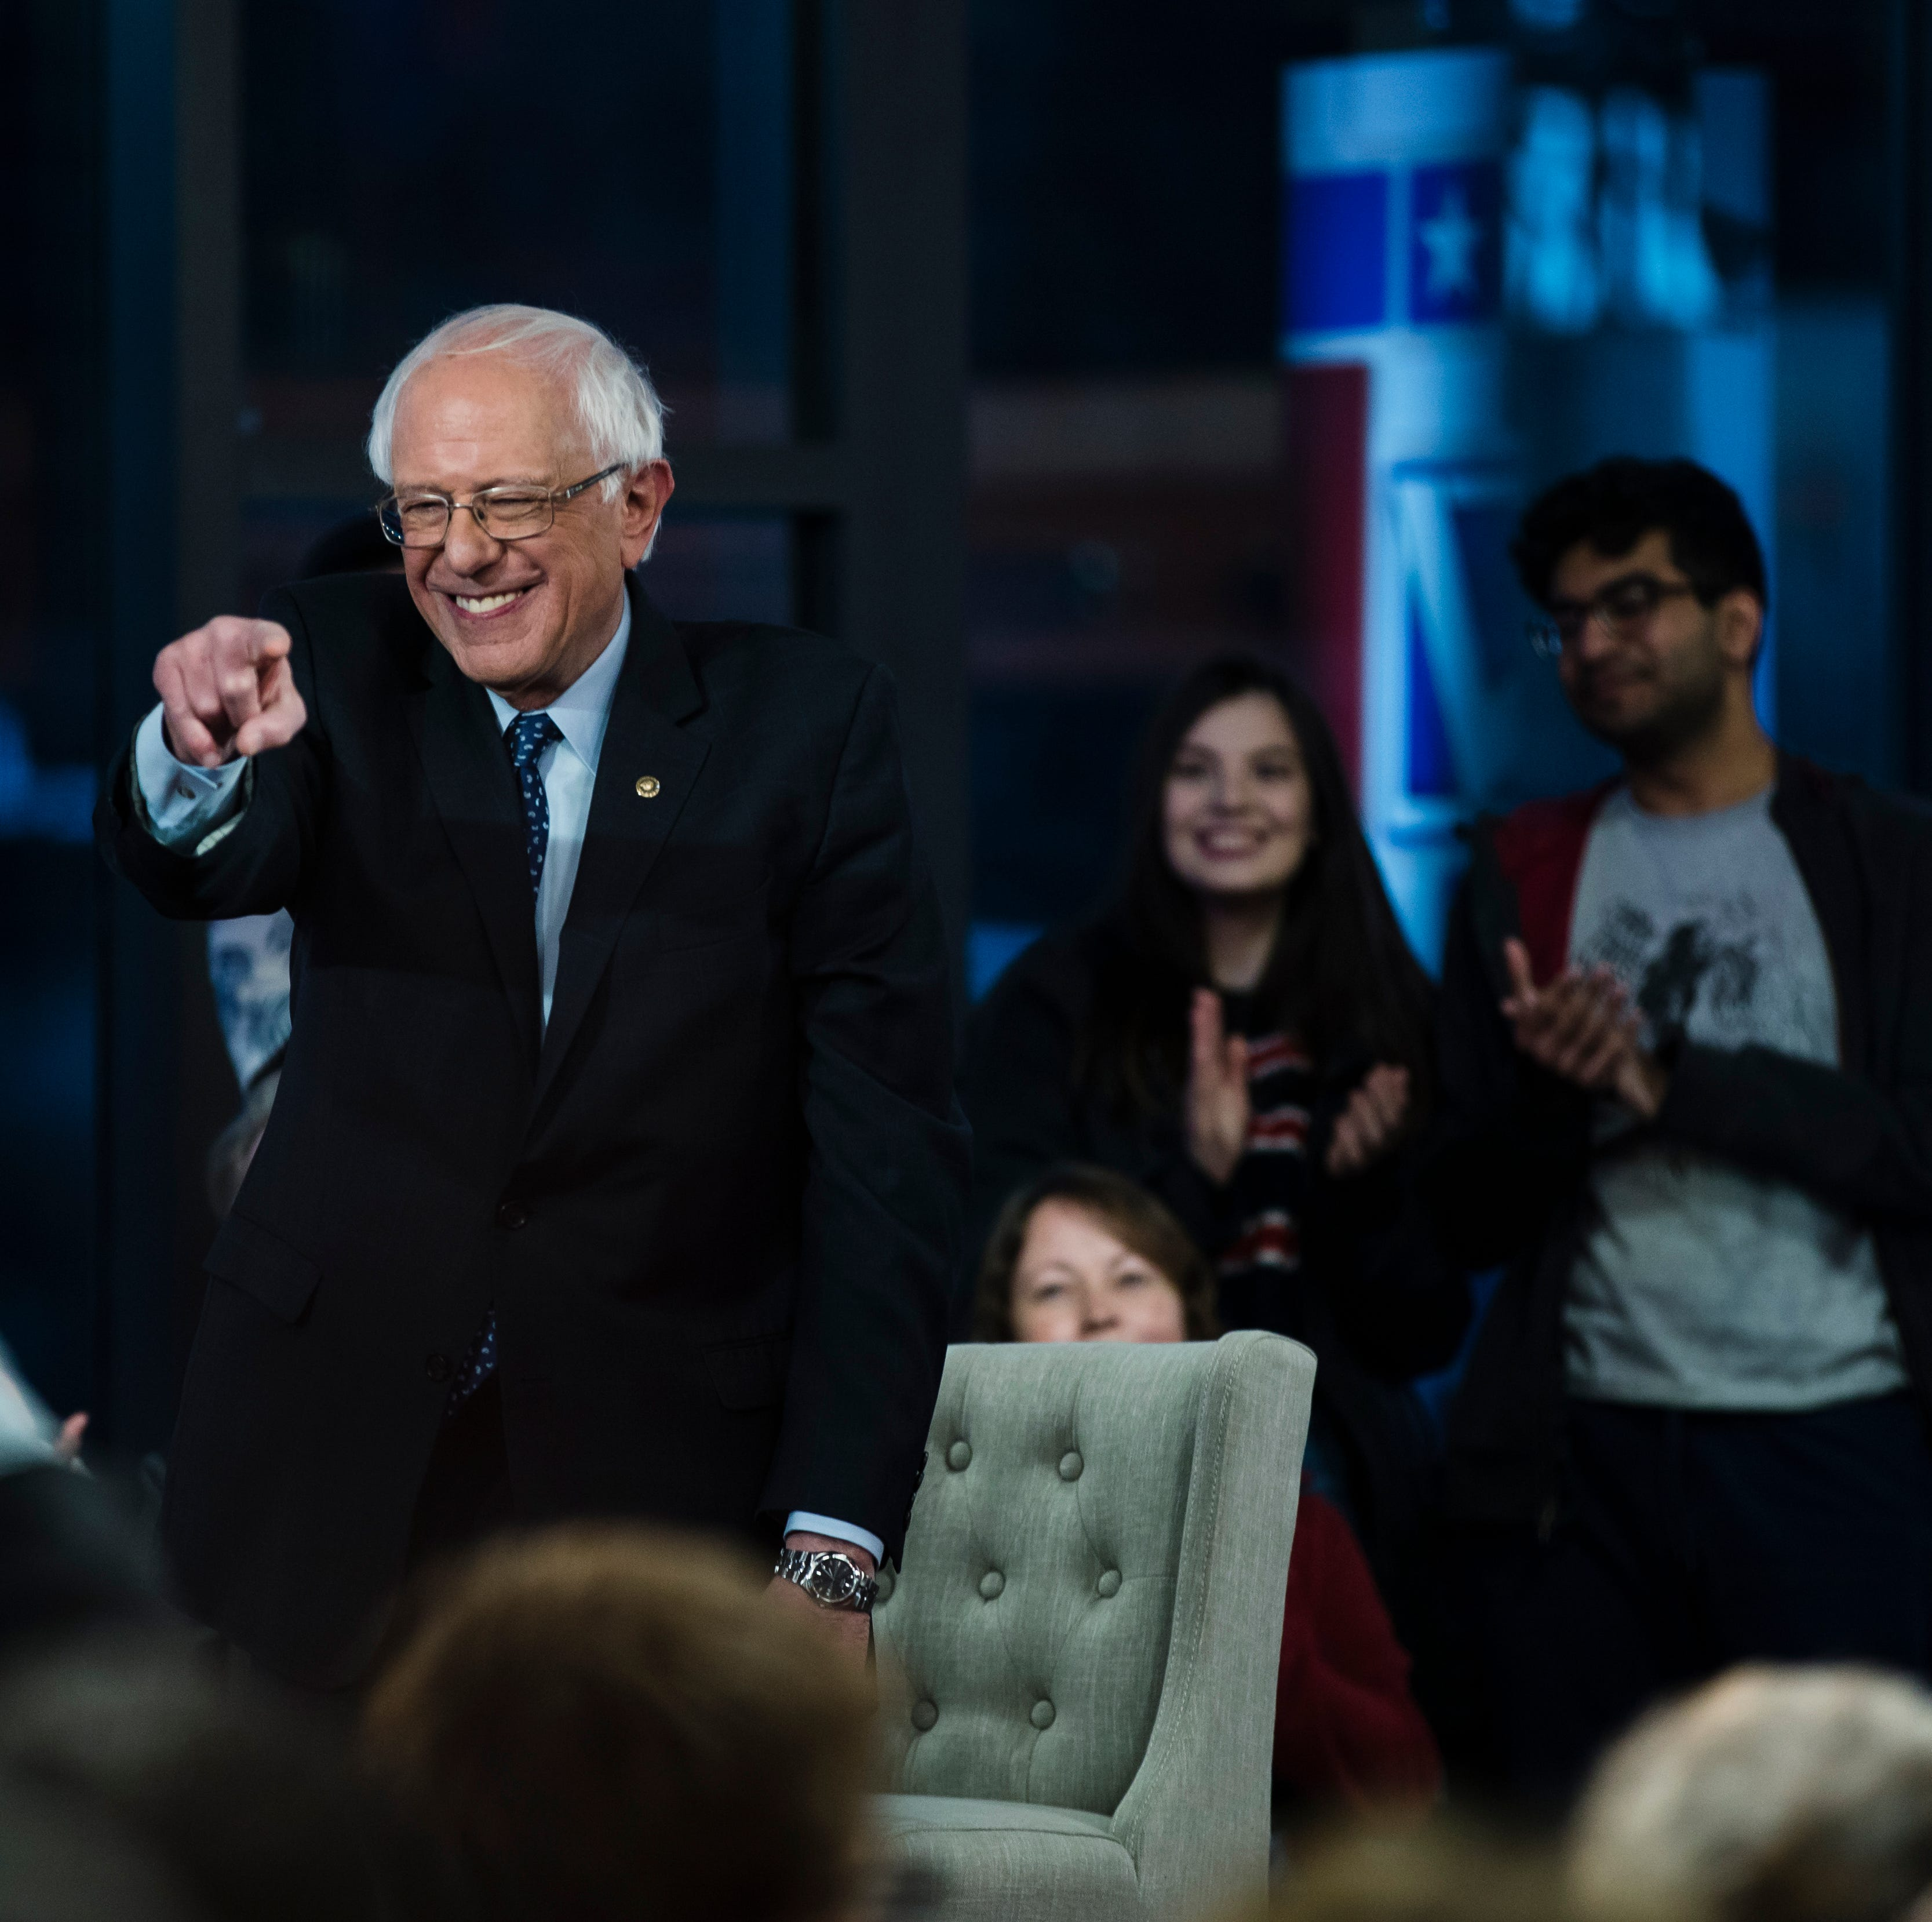 VT Insights: Donald Trump reacts to Bernie Sanders' Fox News town hall